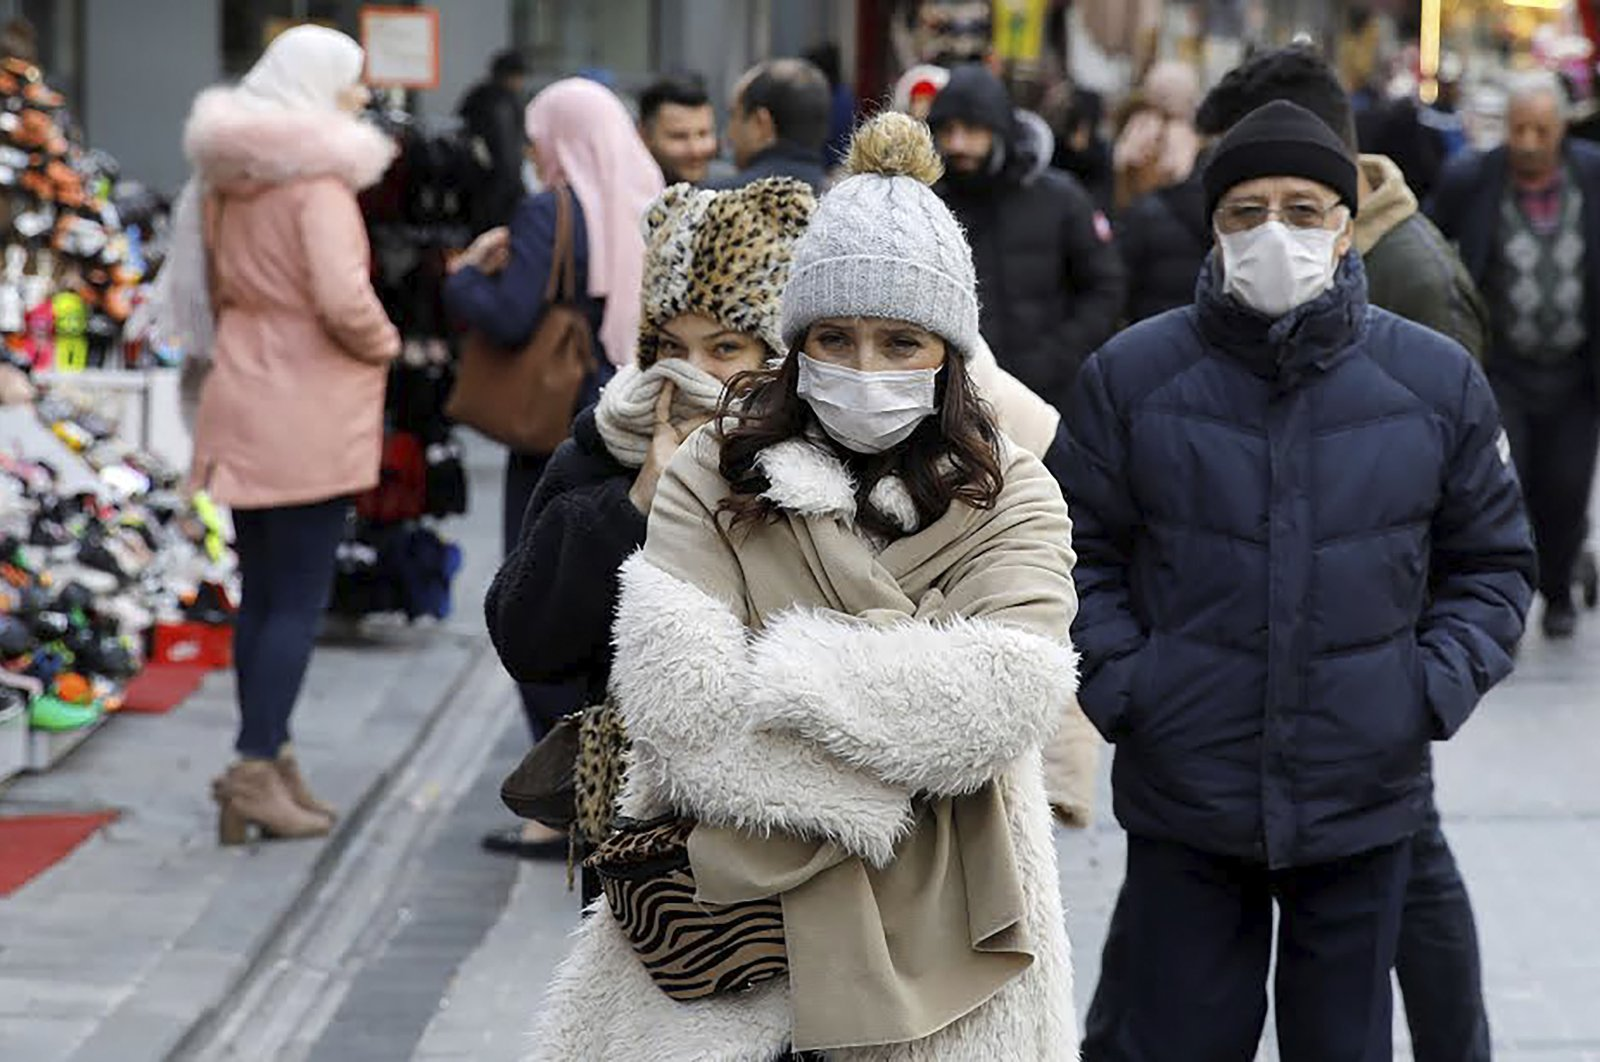 People wear protective face masks due to coronavirus concerns in Istanbul, Turkey, March 16, 2020. REUTERS